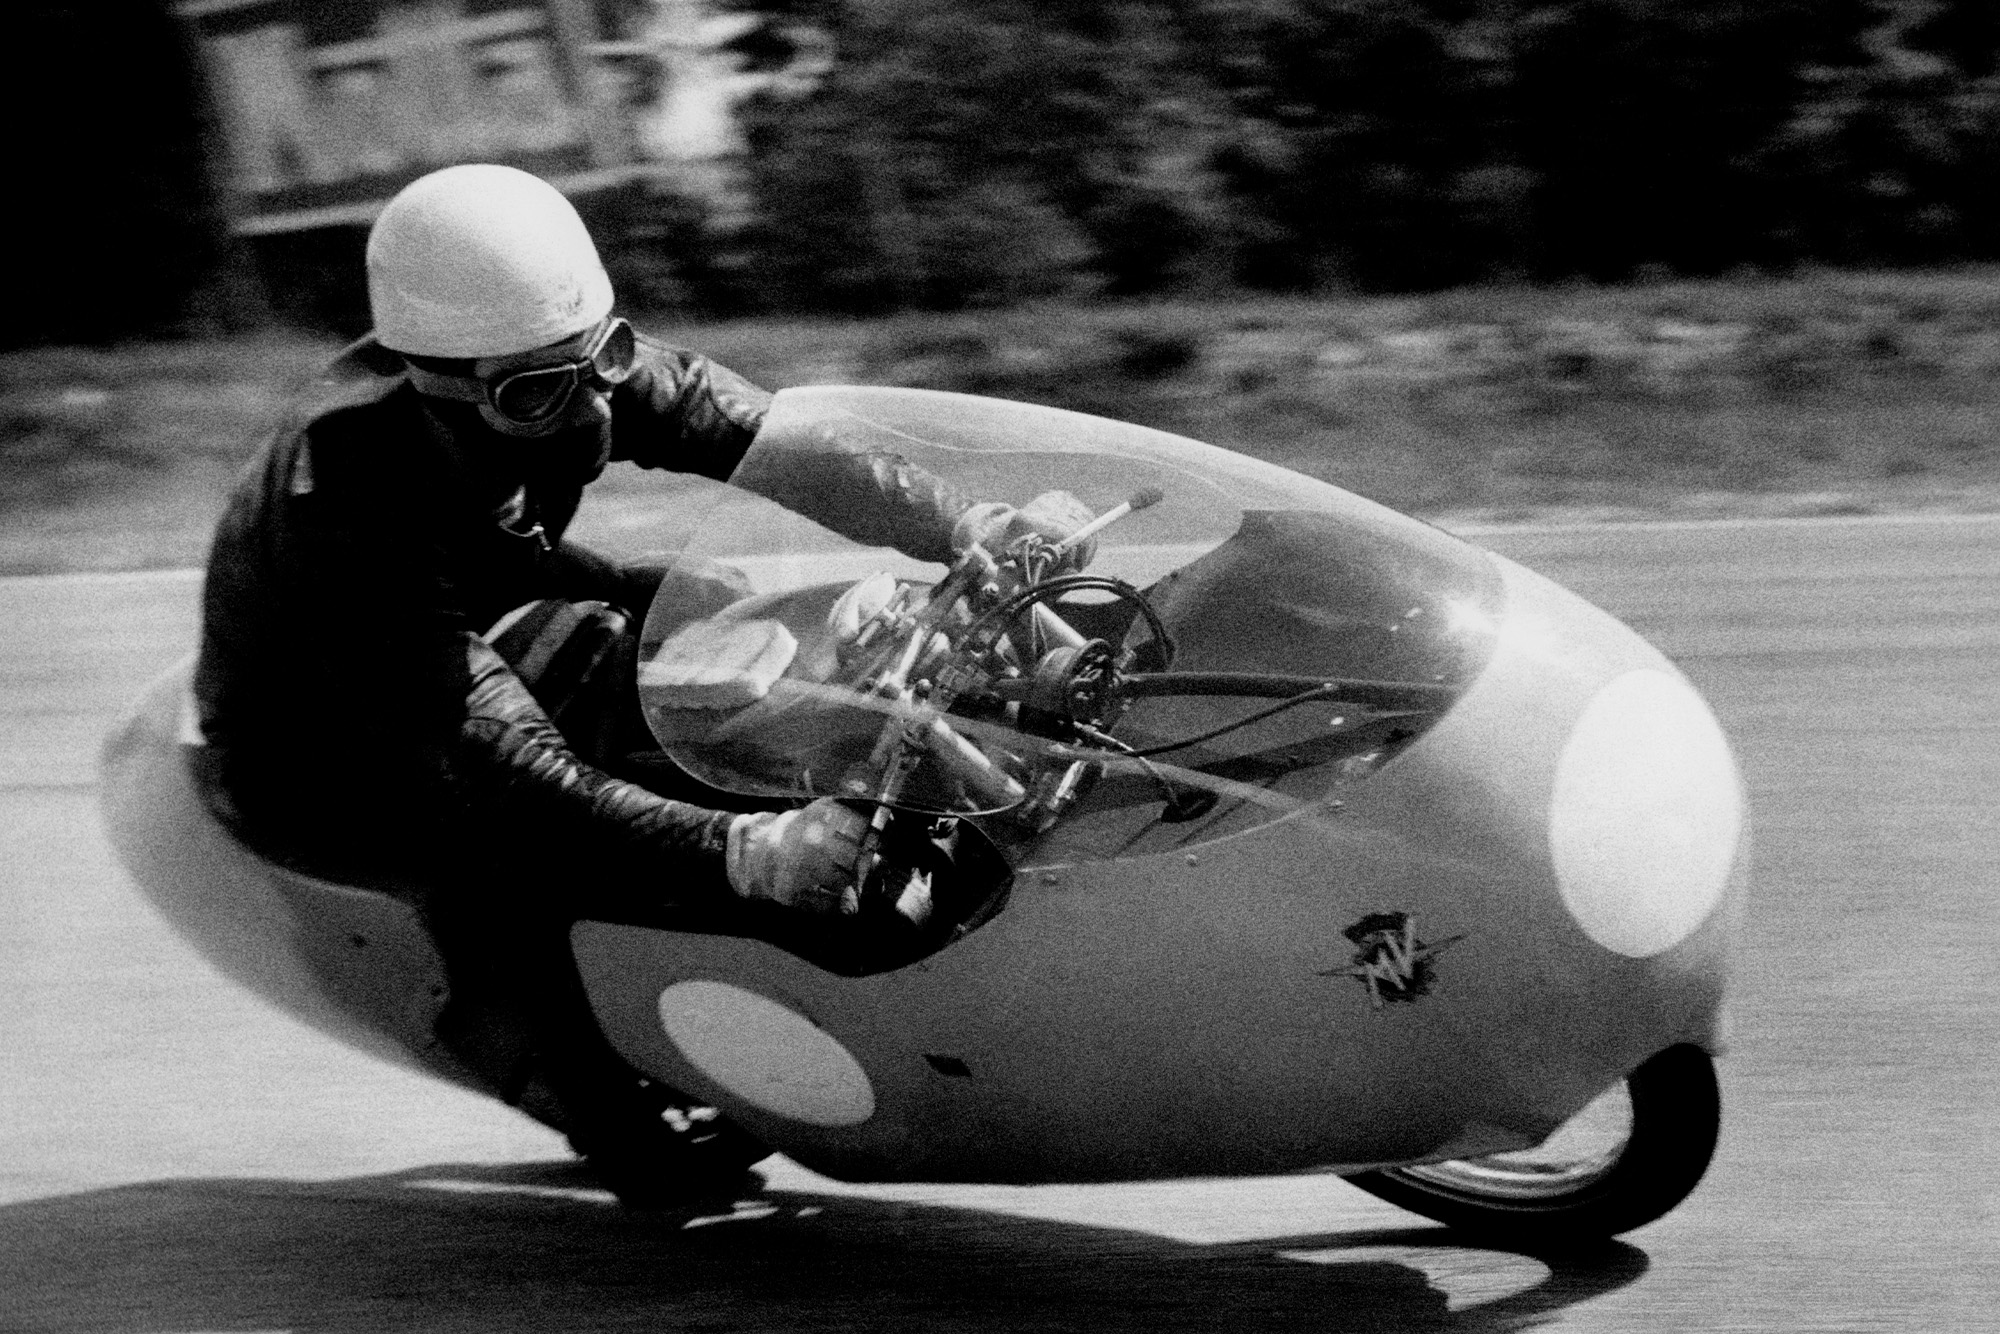 Carlo Ubbiali: GP racing's first dominator